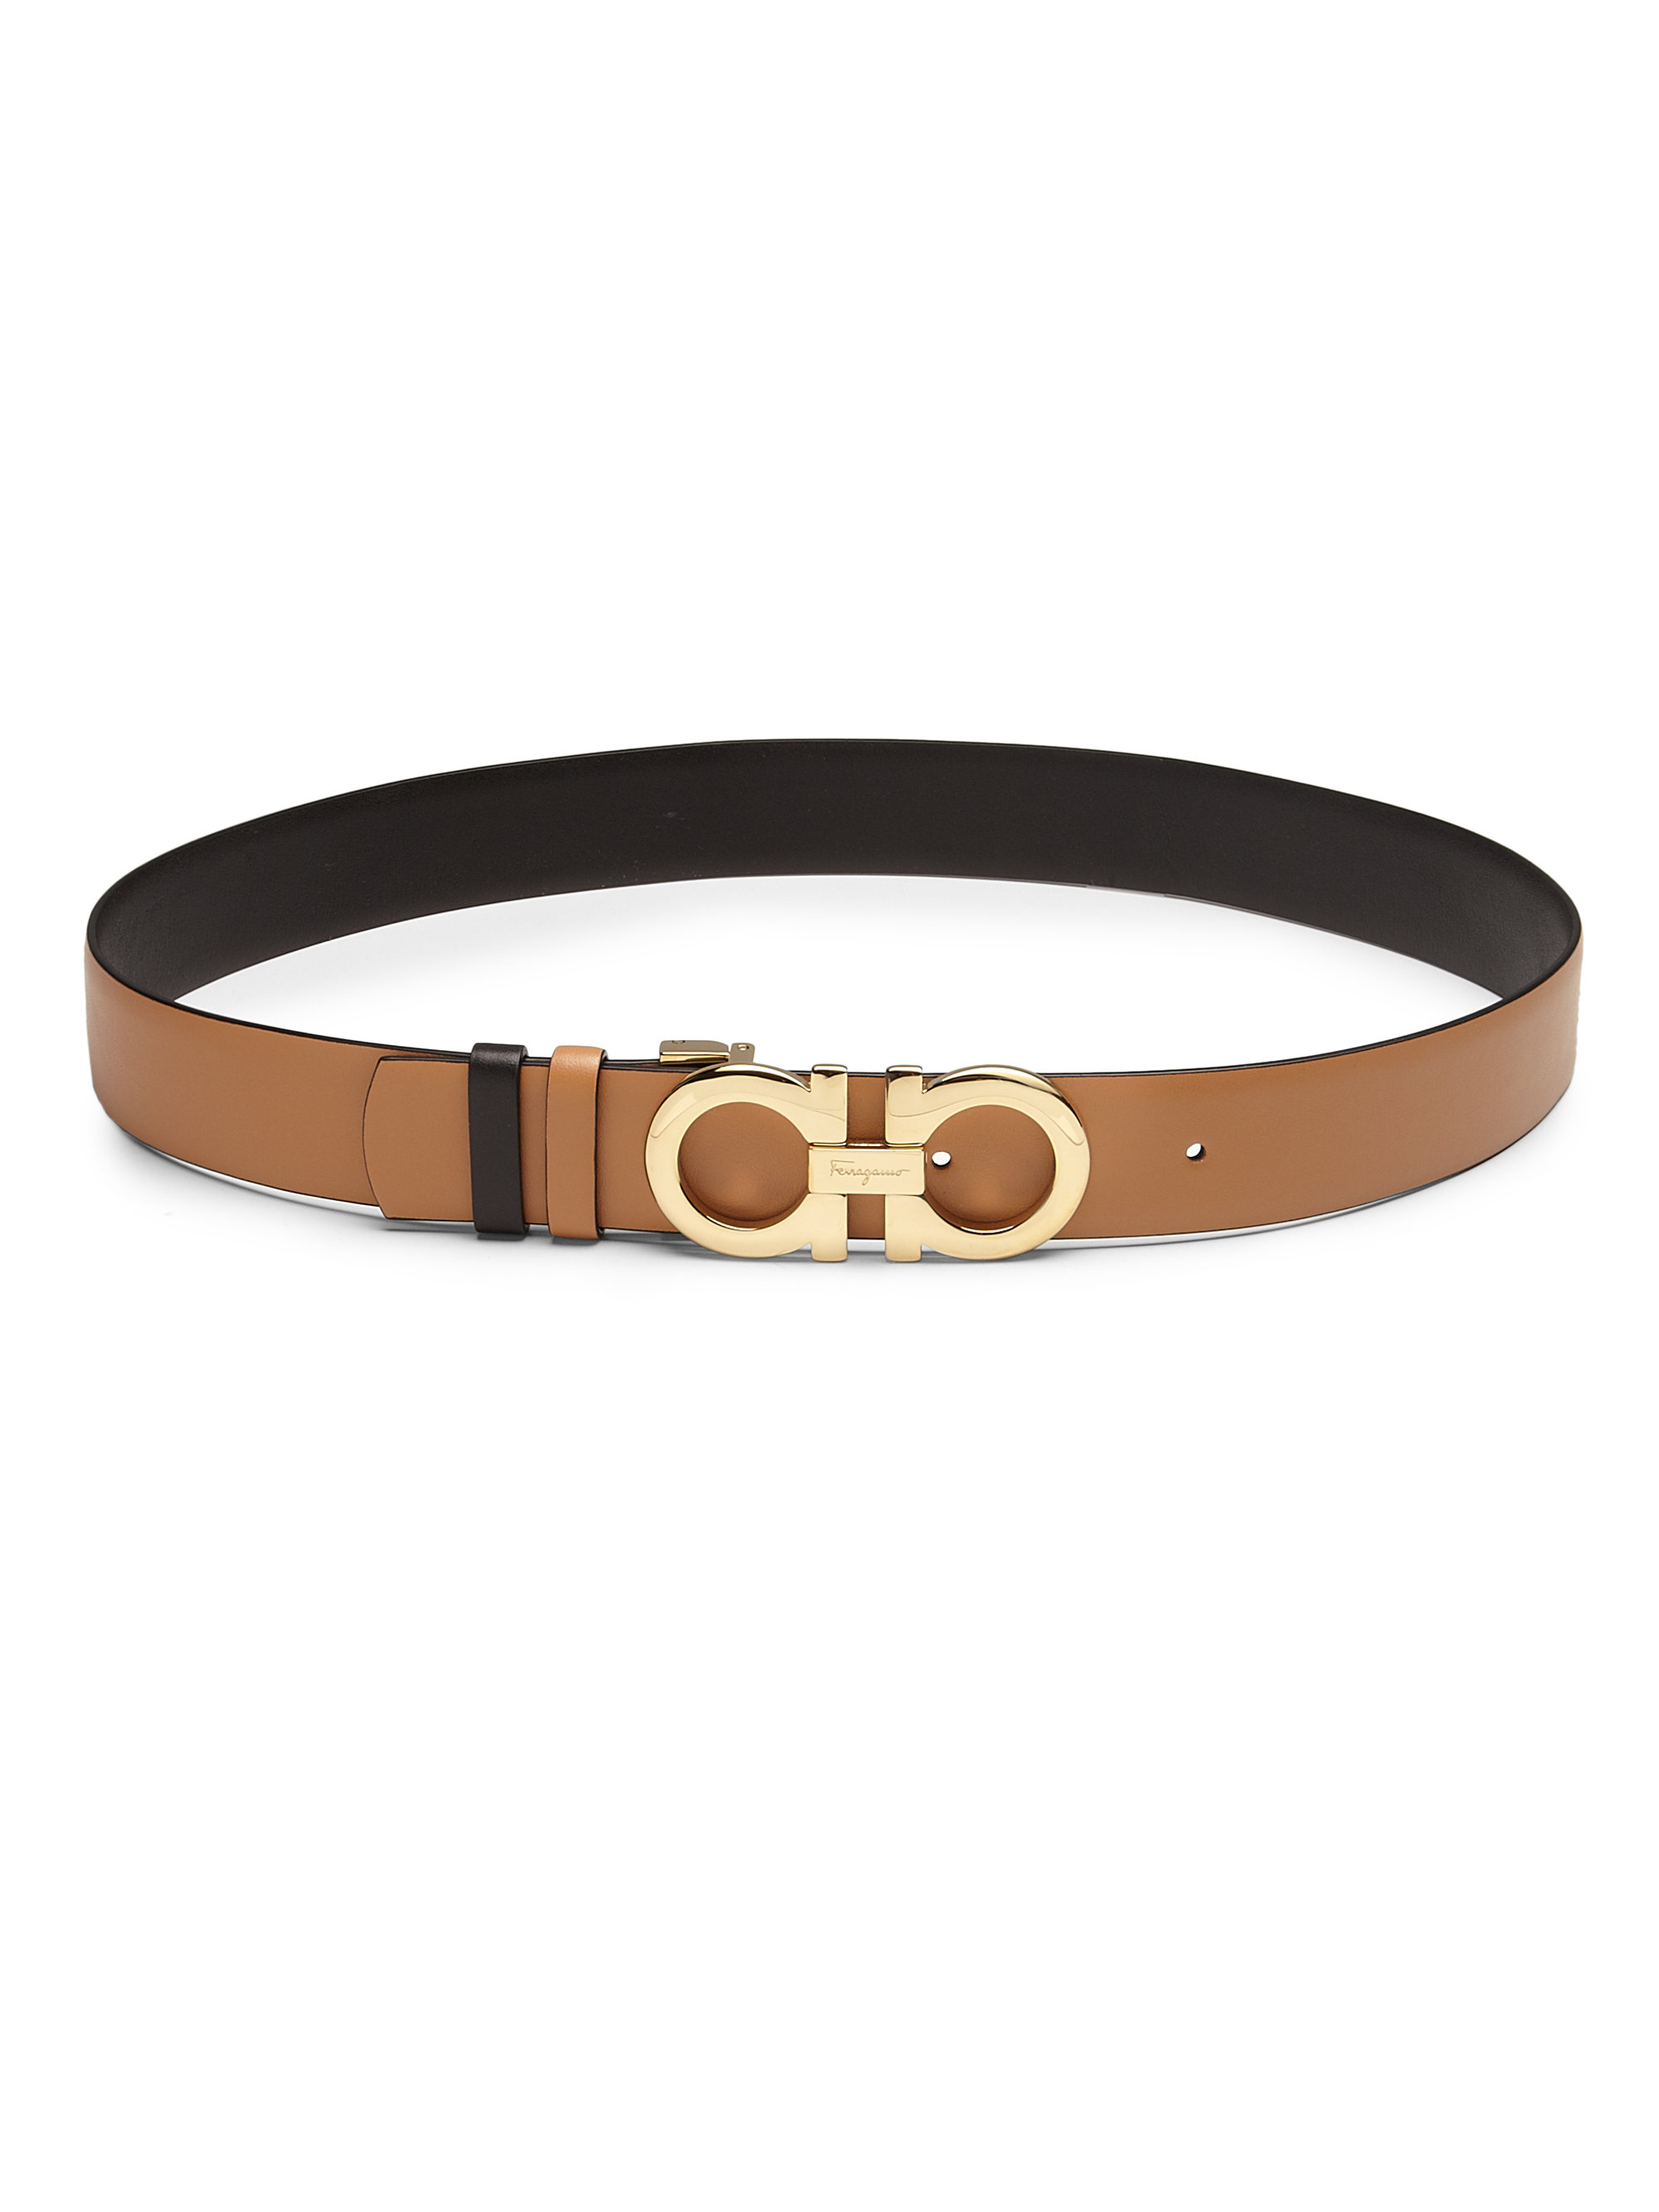 ferragamo gancini medium reversible leather belt in brown